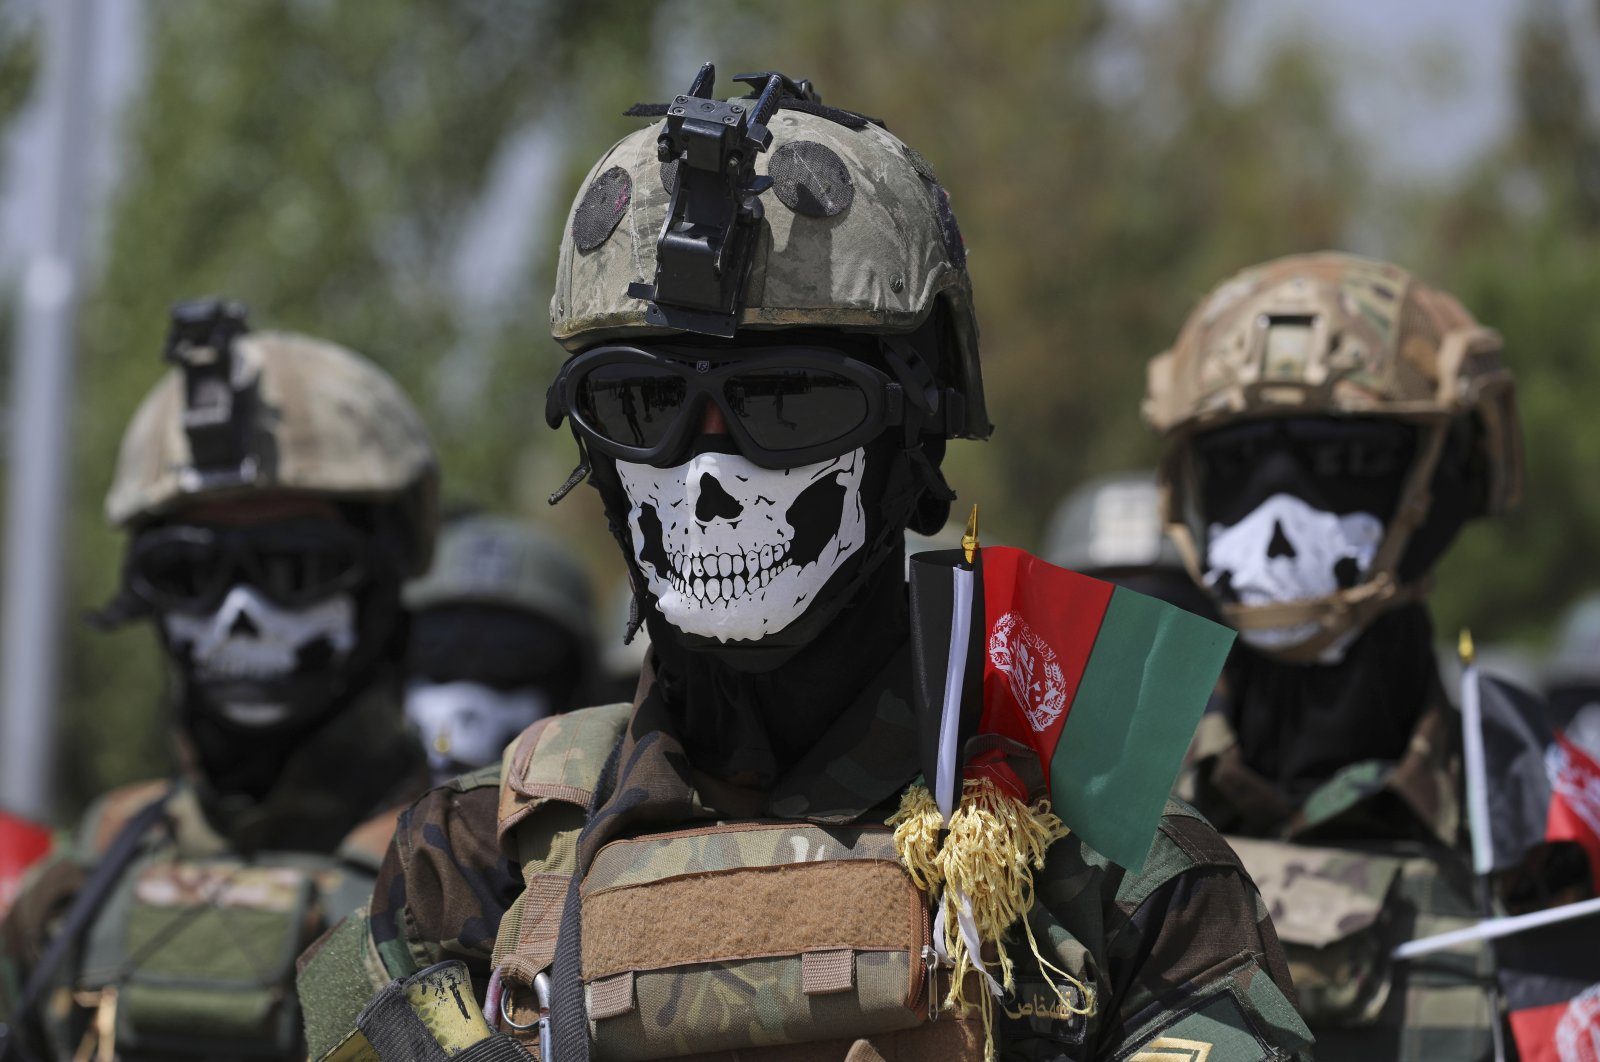 Masked Afghan Army Special Forces attend their graduation ceremony after a three-month training program at the Kabul Military Training Center, in Kabul, Afghanistan. July 17, 2021. (AP Photo)